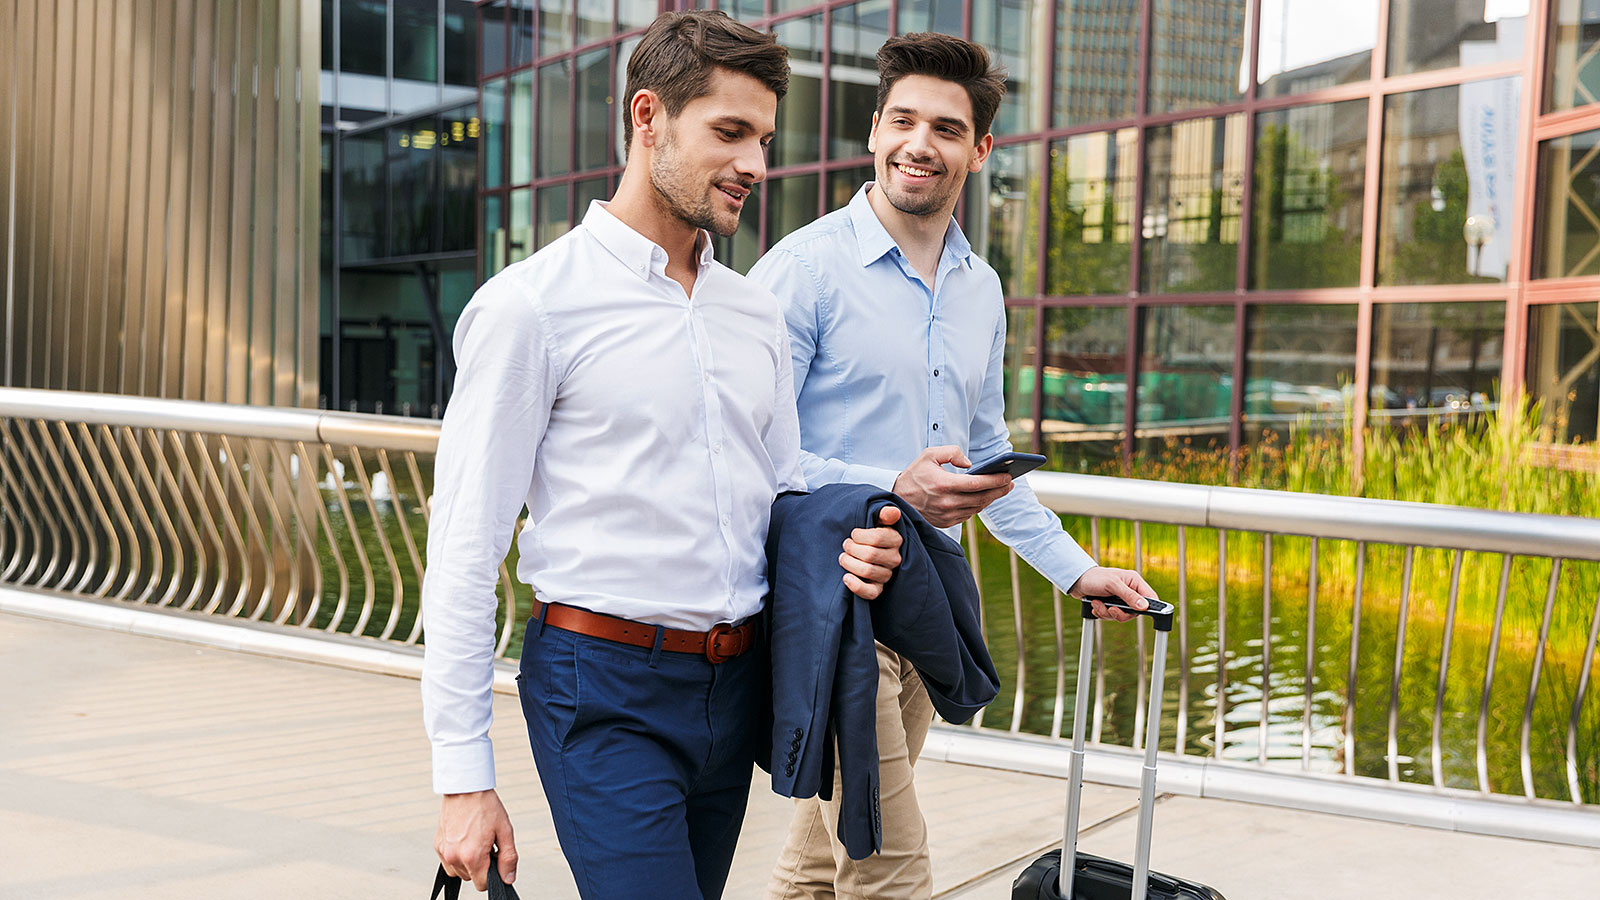 How to travel with colleagues to off-site meetings without awkwardness